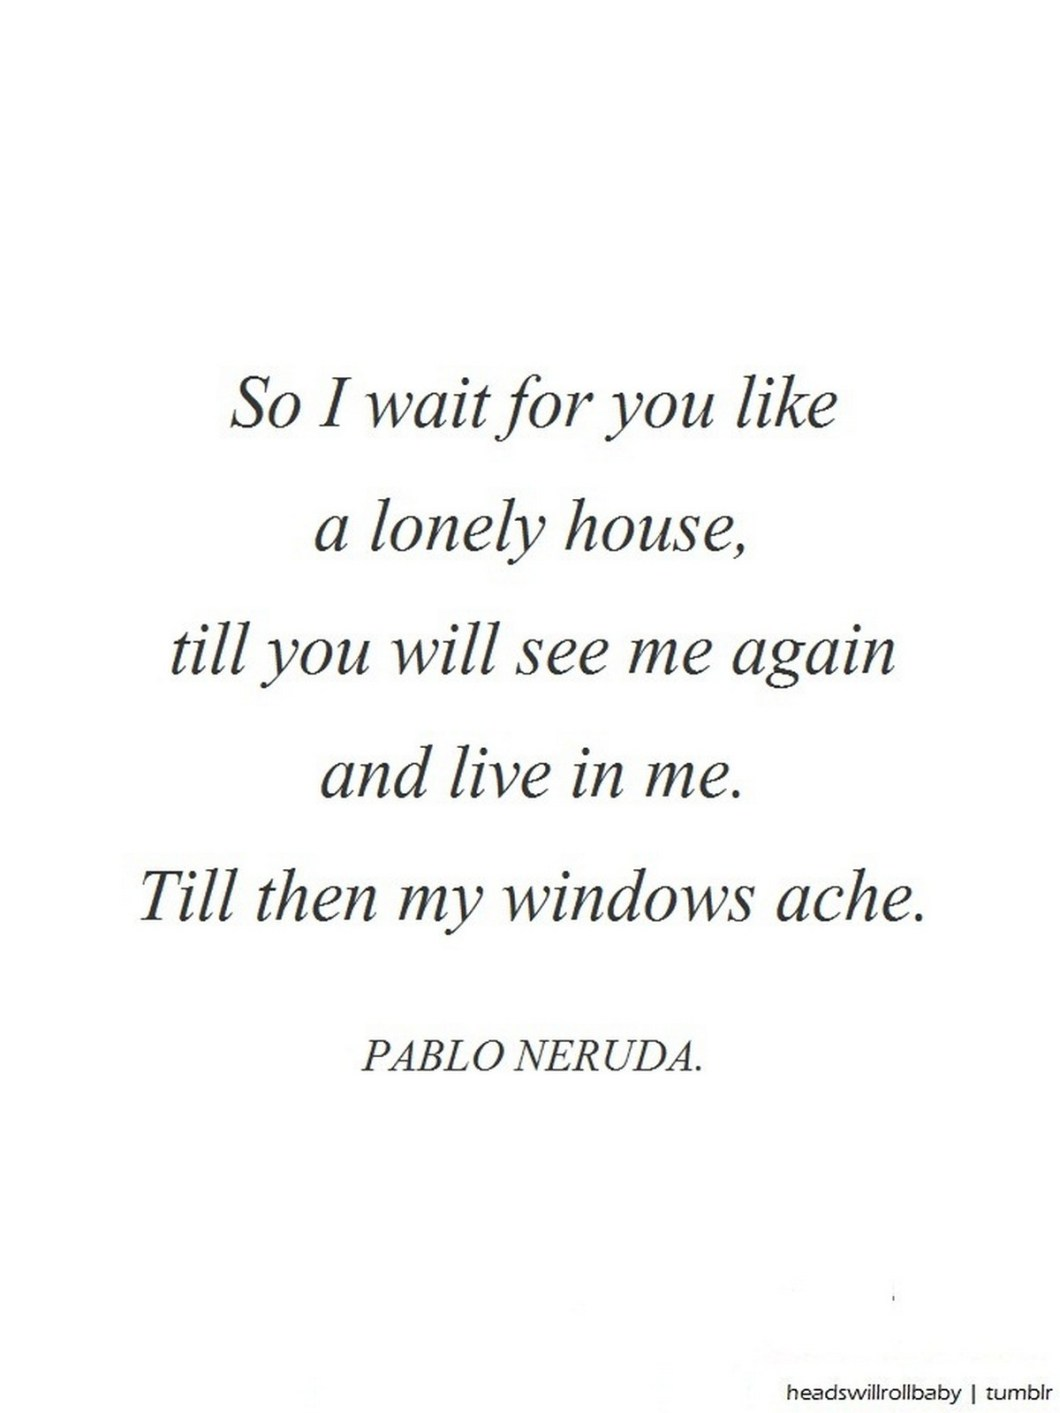 """55 Romantic Quotes - """"So I wait for you like a lonely house, till you will see me again and live in me. Till then my windows ache."""" - Pablo Neruda"""